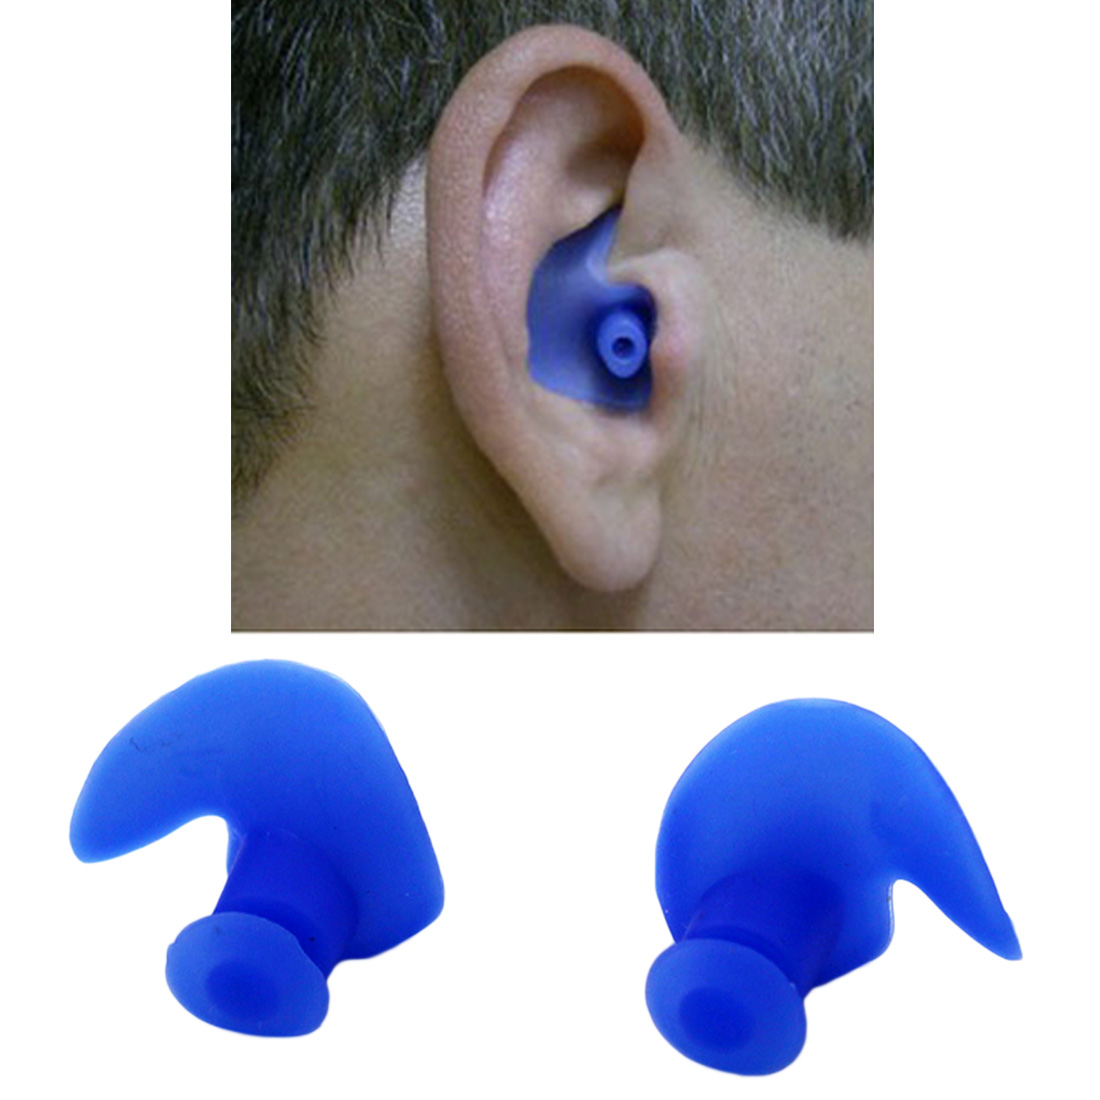 1 Pair Waterproof Swimming Earplugs Professional Silicone Swim Earplugs Adult Swimmers Children Diving Soft Anti-Noise Ear Plug